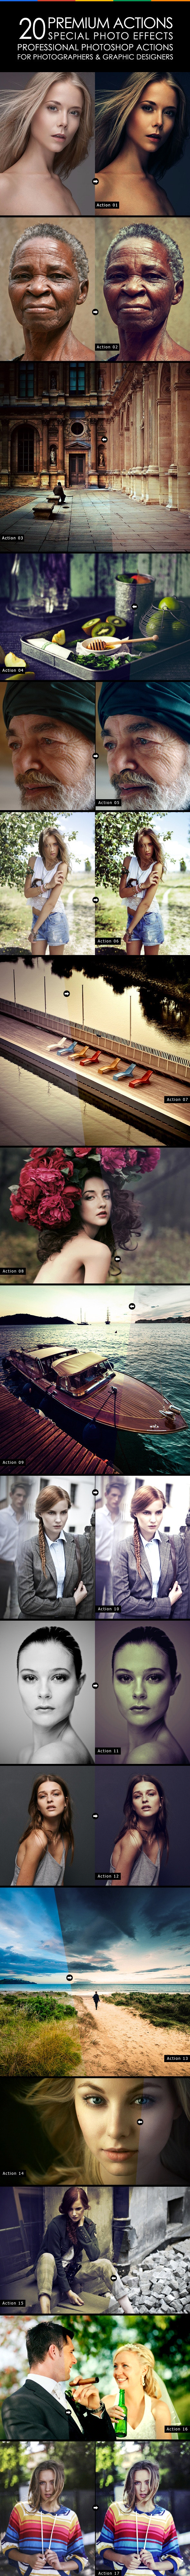 20 Premium Actions - Photo Effects Actions